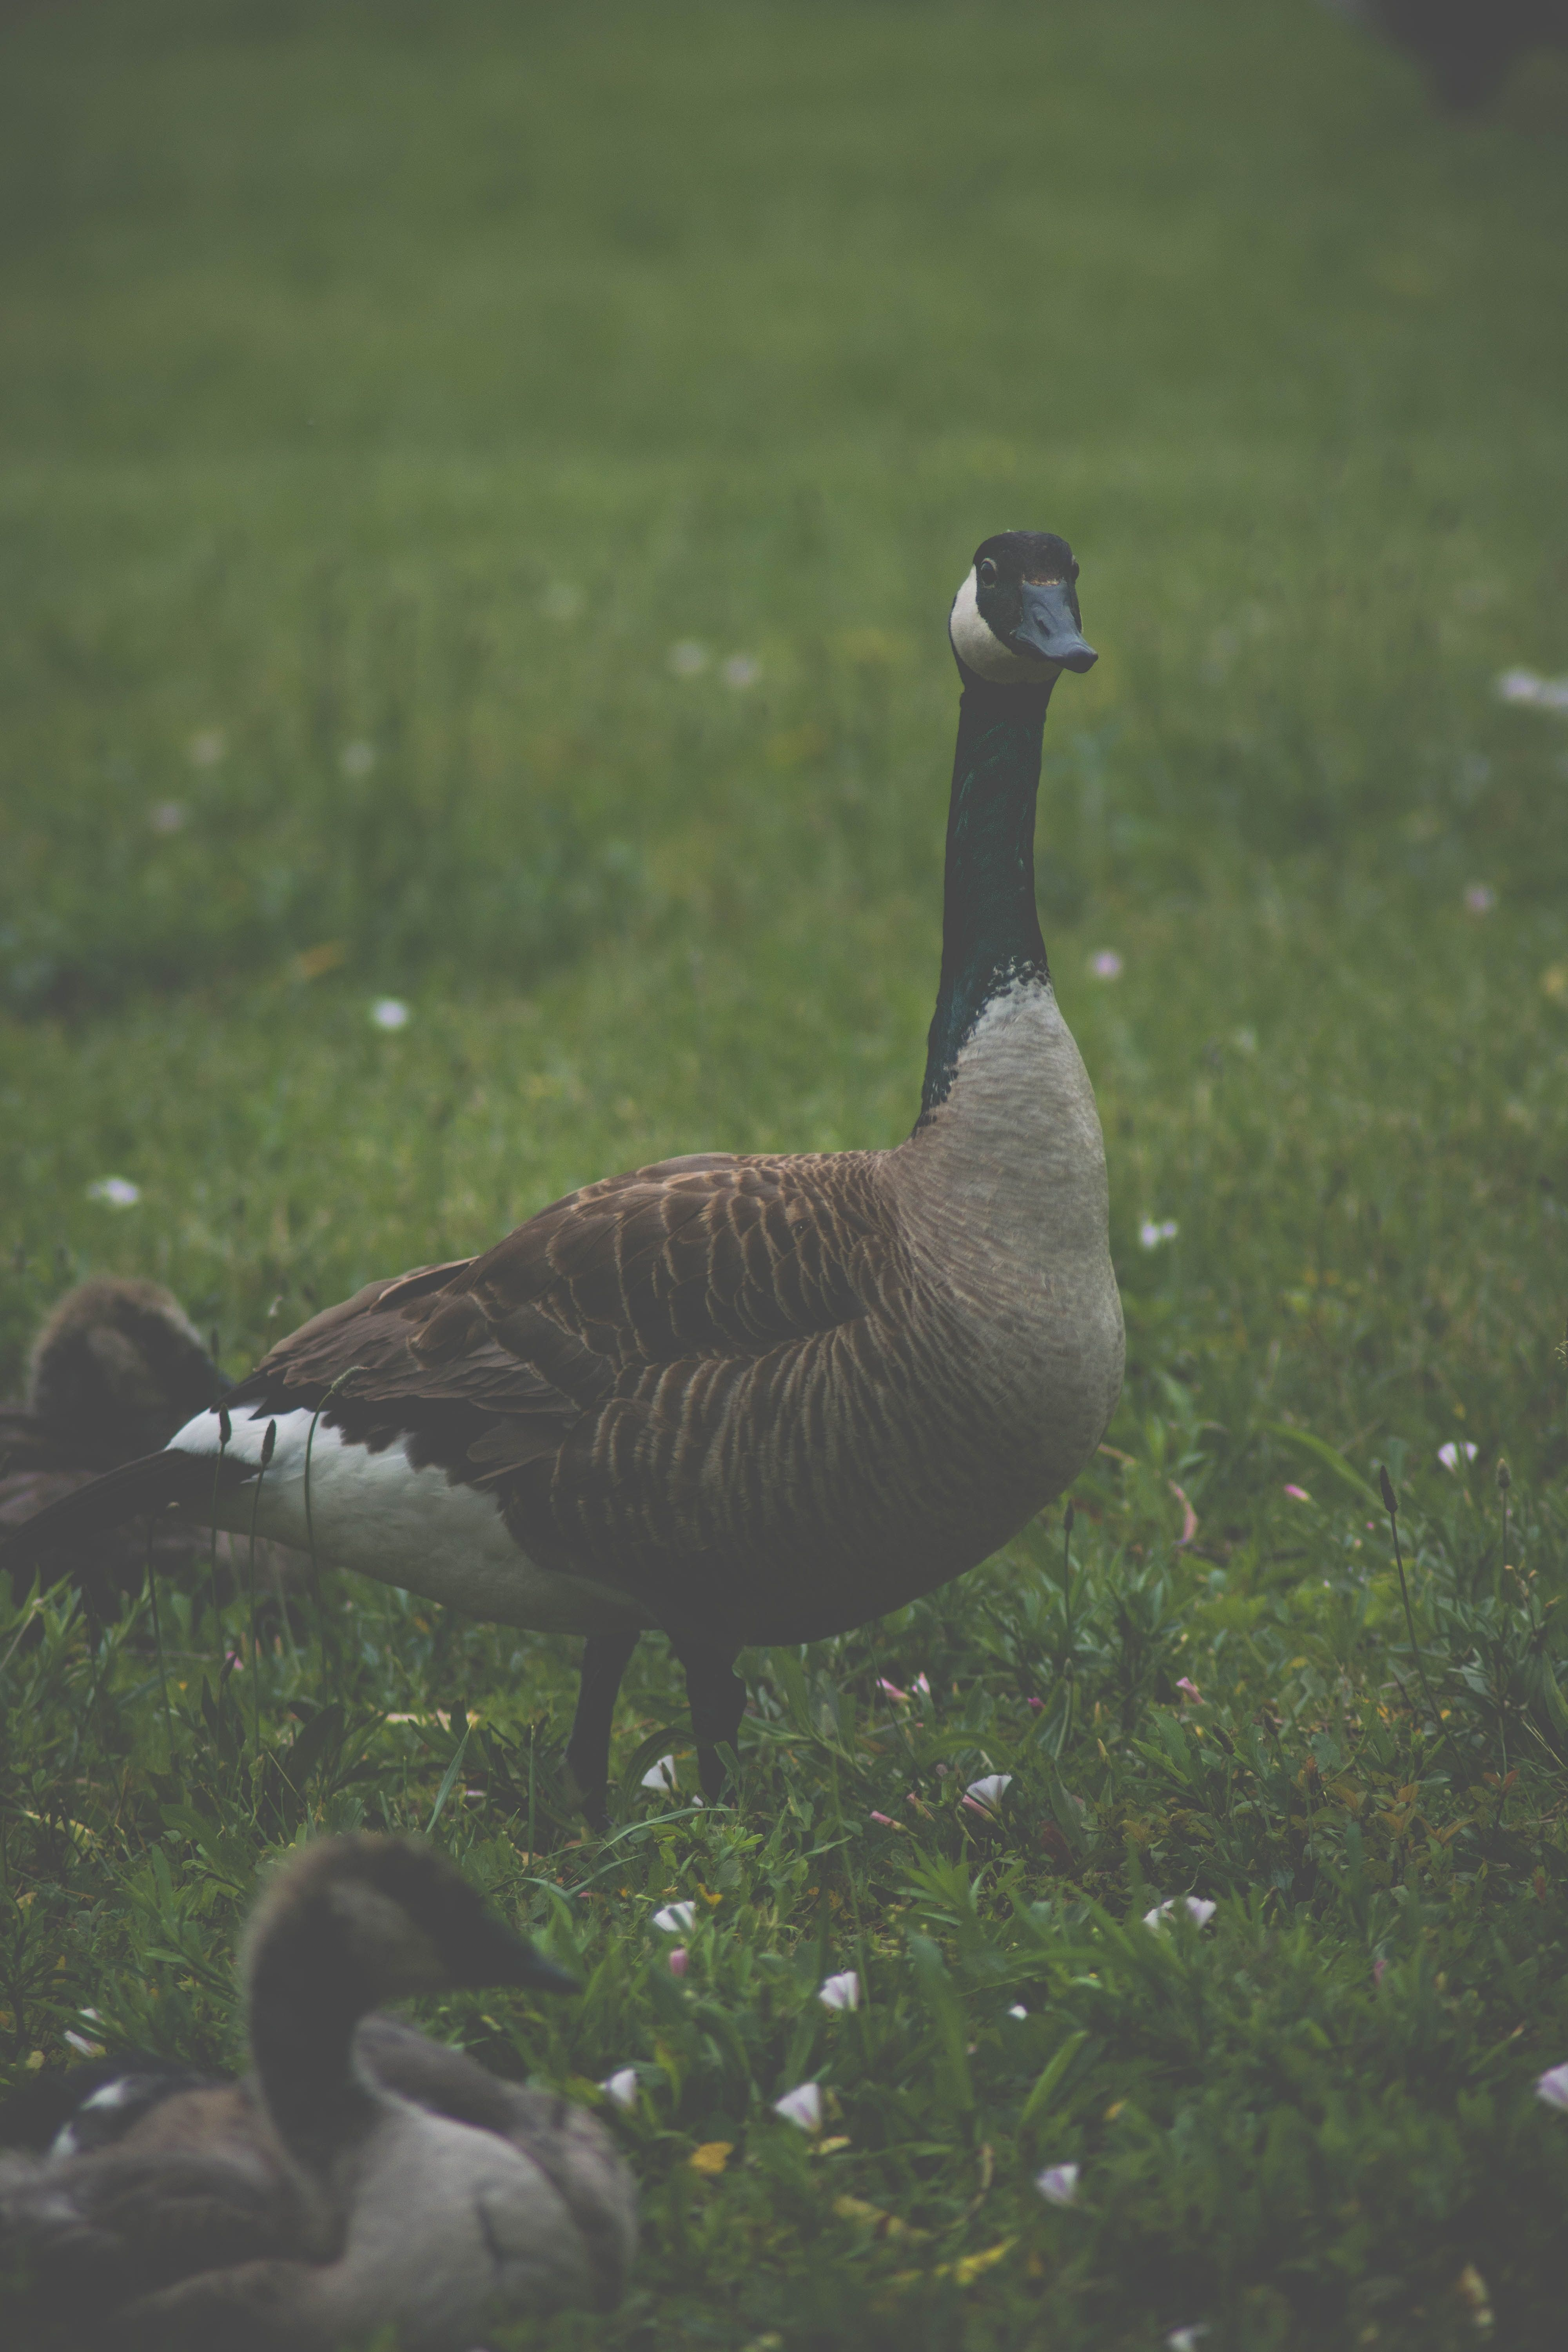 Everyone agrees that geese are loud and make good